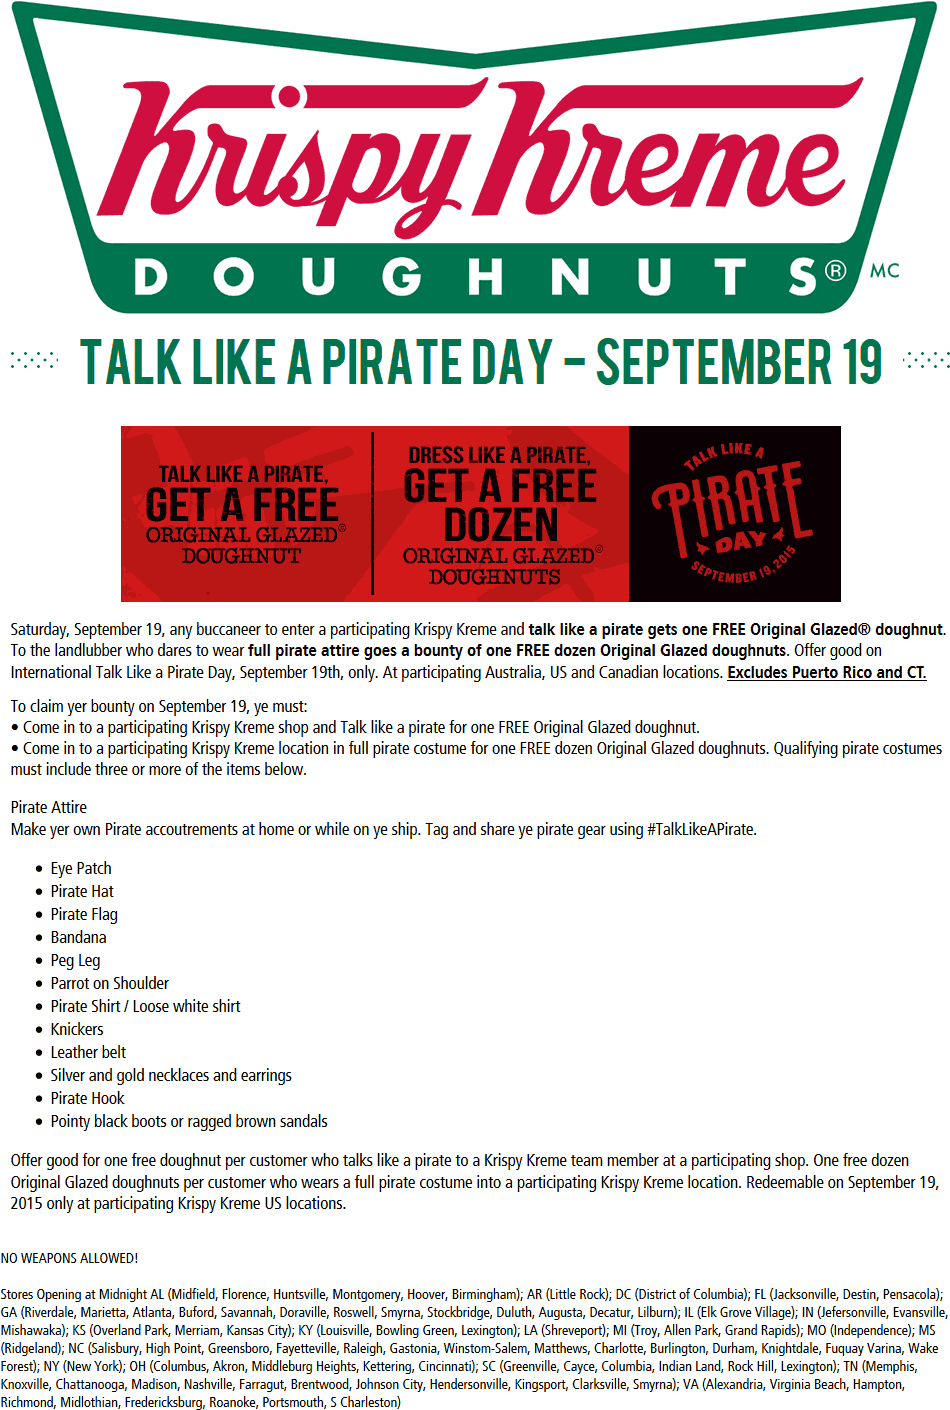 Krispy Kreme Coupon March 2017 Free dozen doughnuts for pirates the 19th at Krispy Kreme